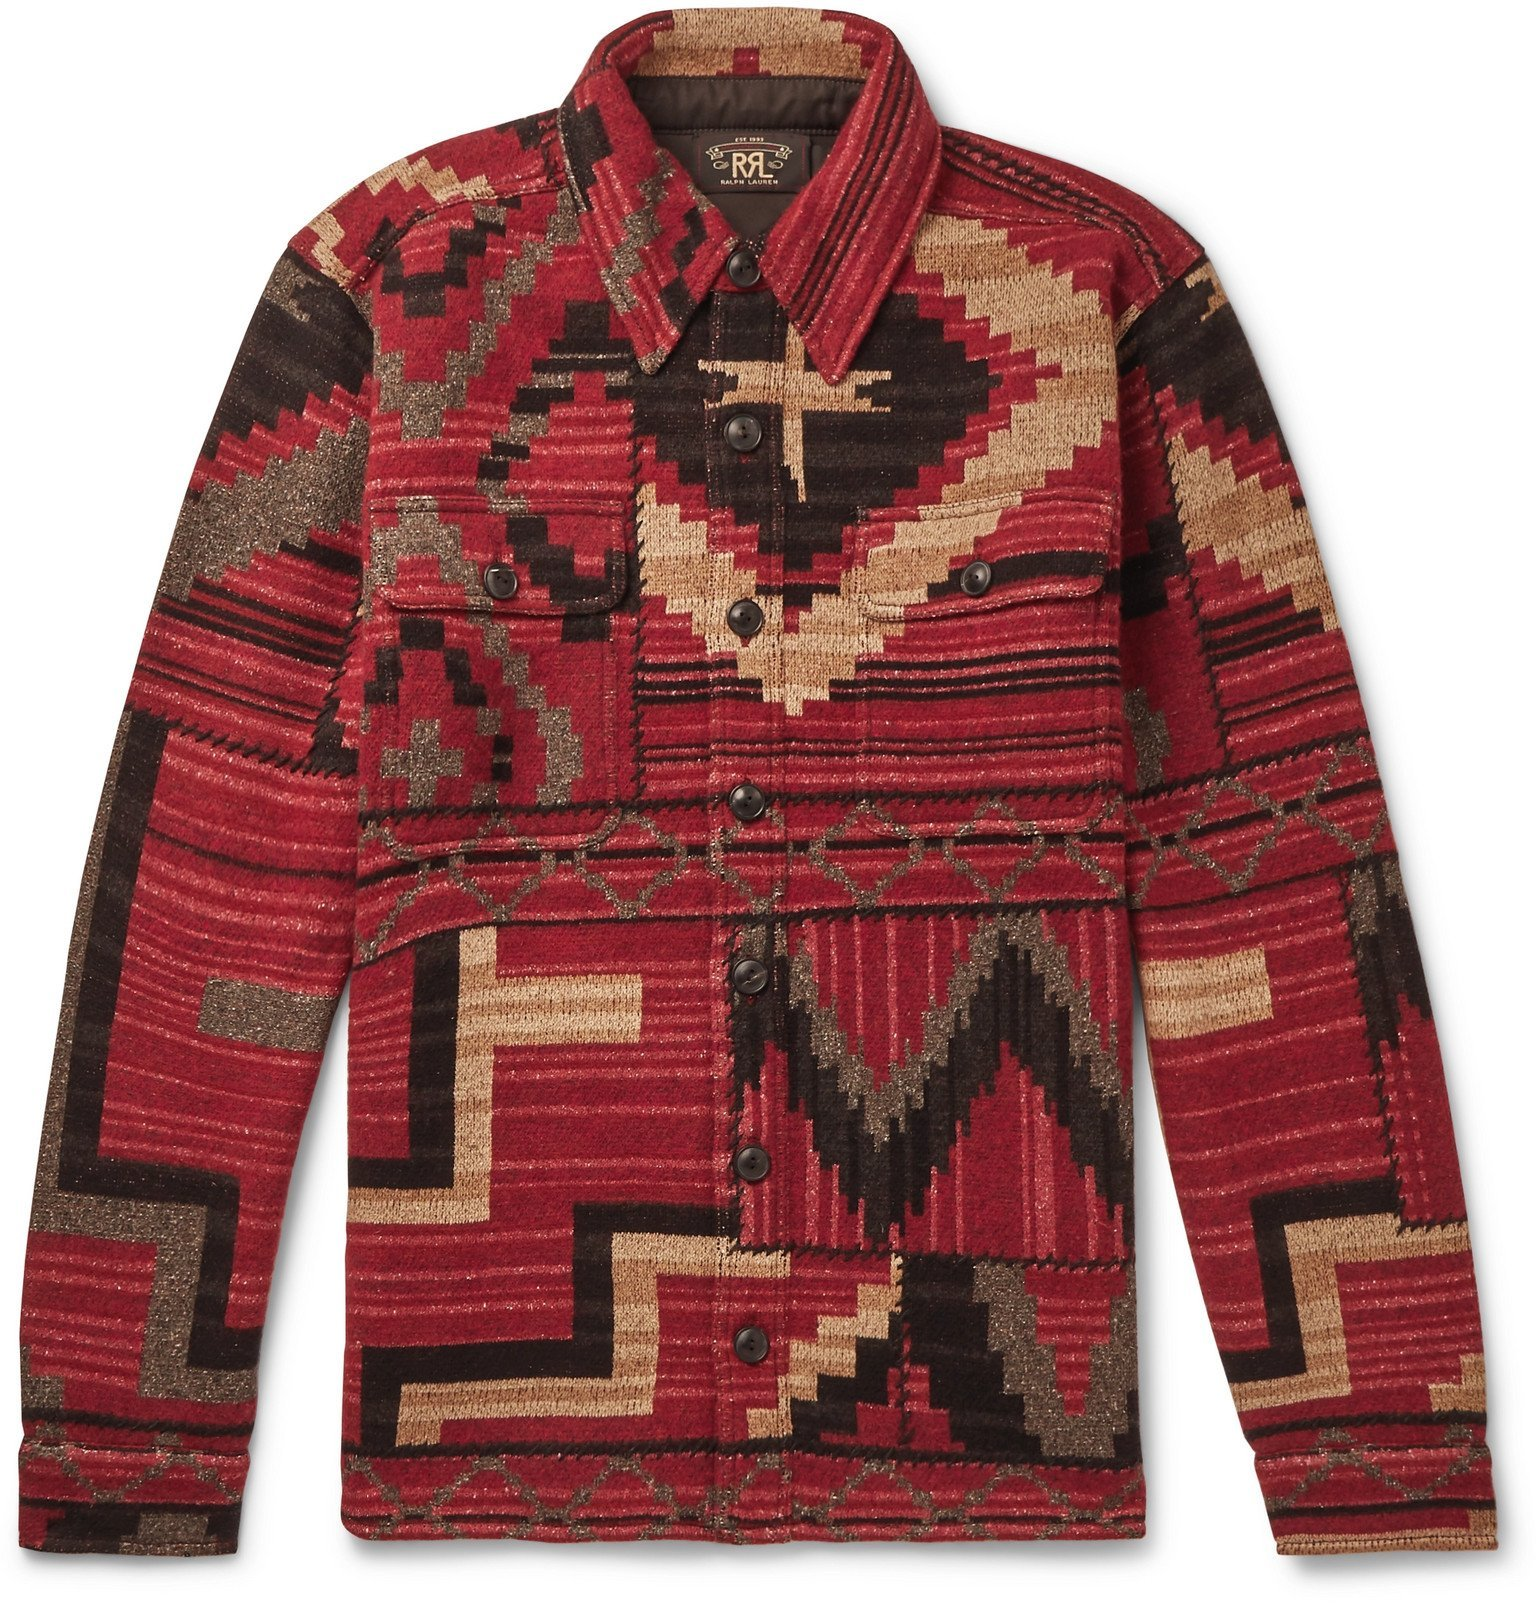 RRL - Wool, Silk and Cashmere-Blend Jacquard Overshirt - Red